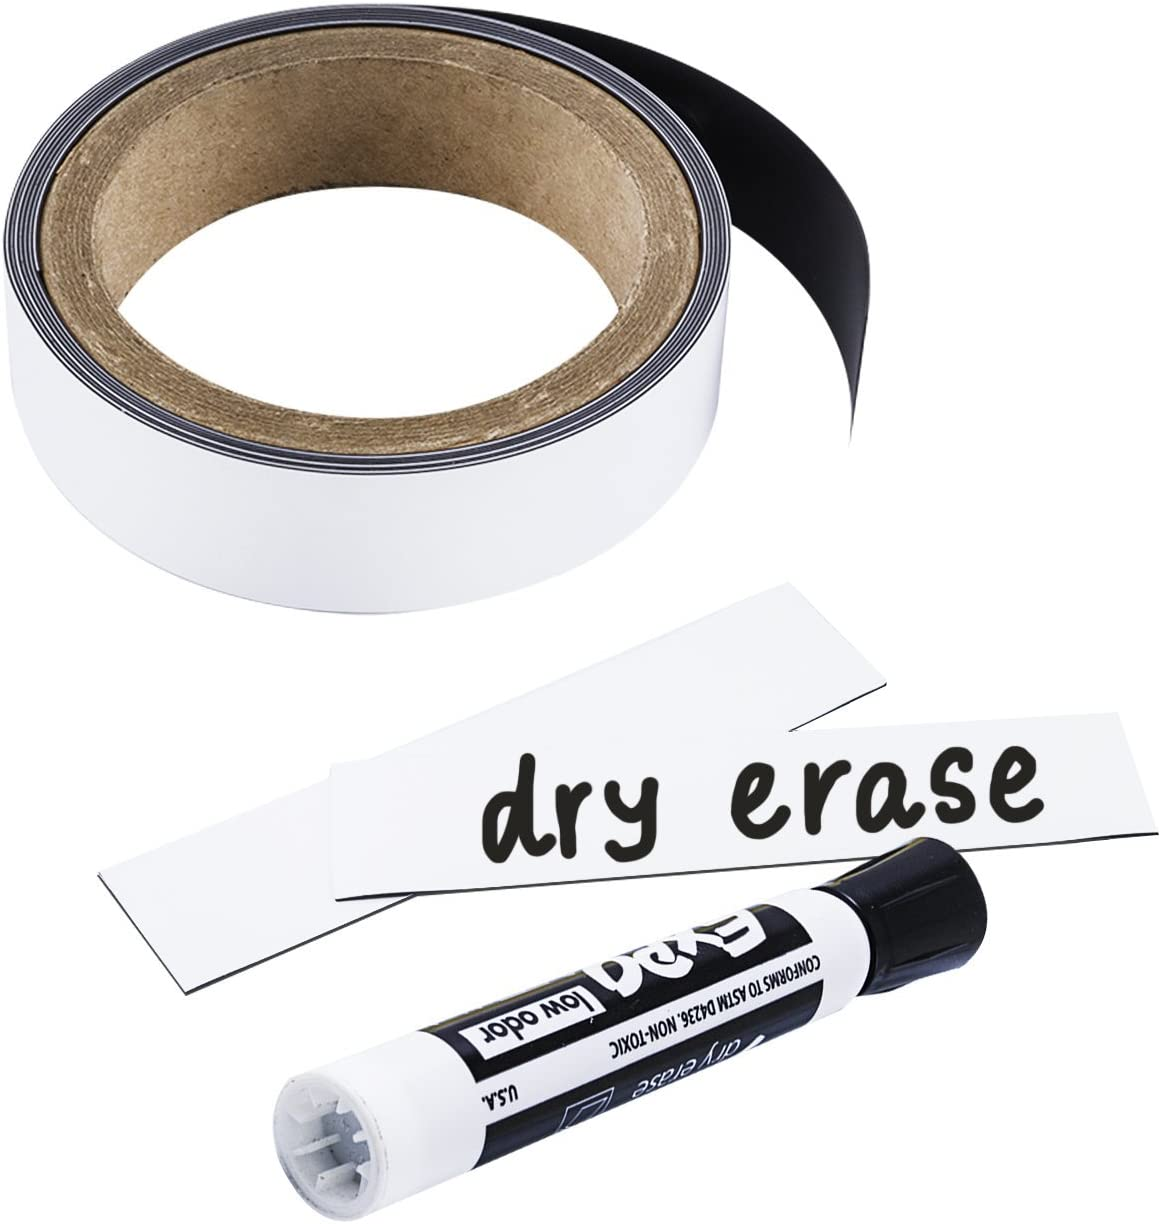 Houseables Write On Magnets Roll, Dry Erase Magnetic Strip, Glossy White, 1 Inch Wide x 25' Long, Wipe Off Labels, Magnetically Receptive Whiteboard Sheet, Board Magnet, for Home, Office